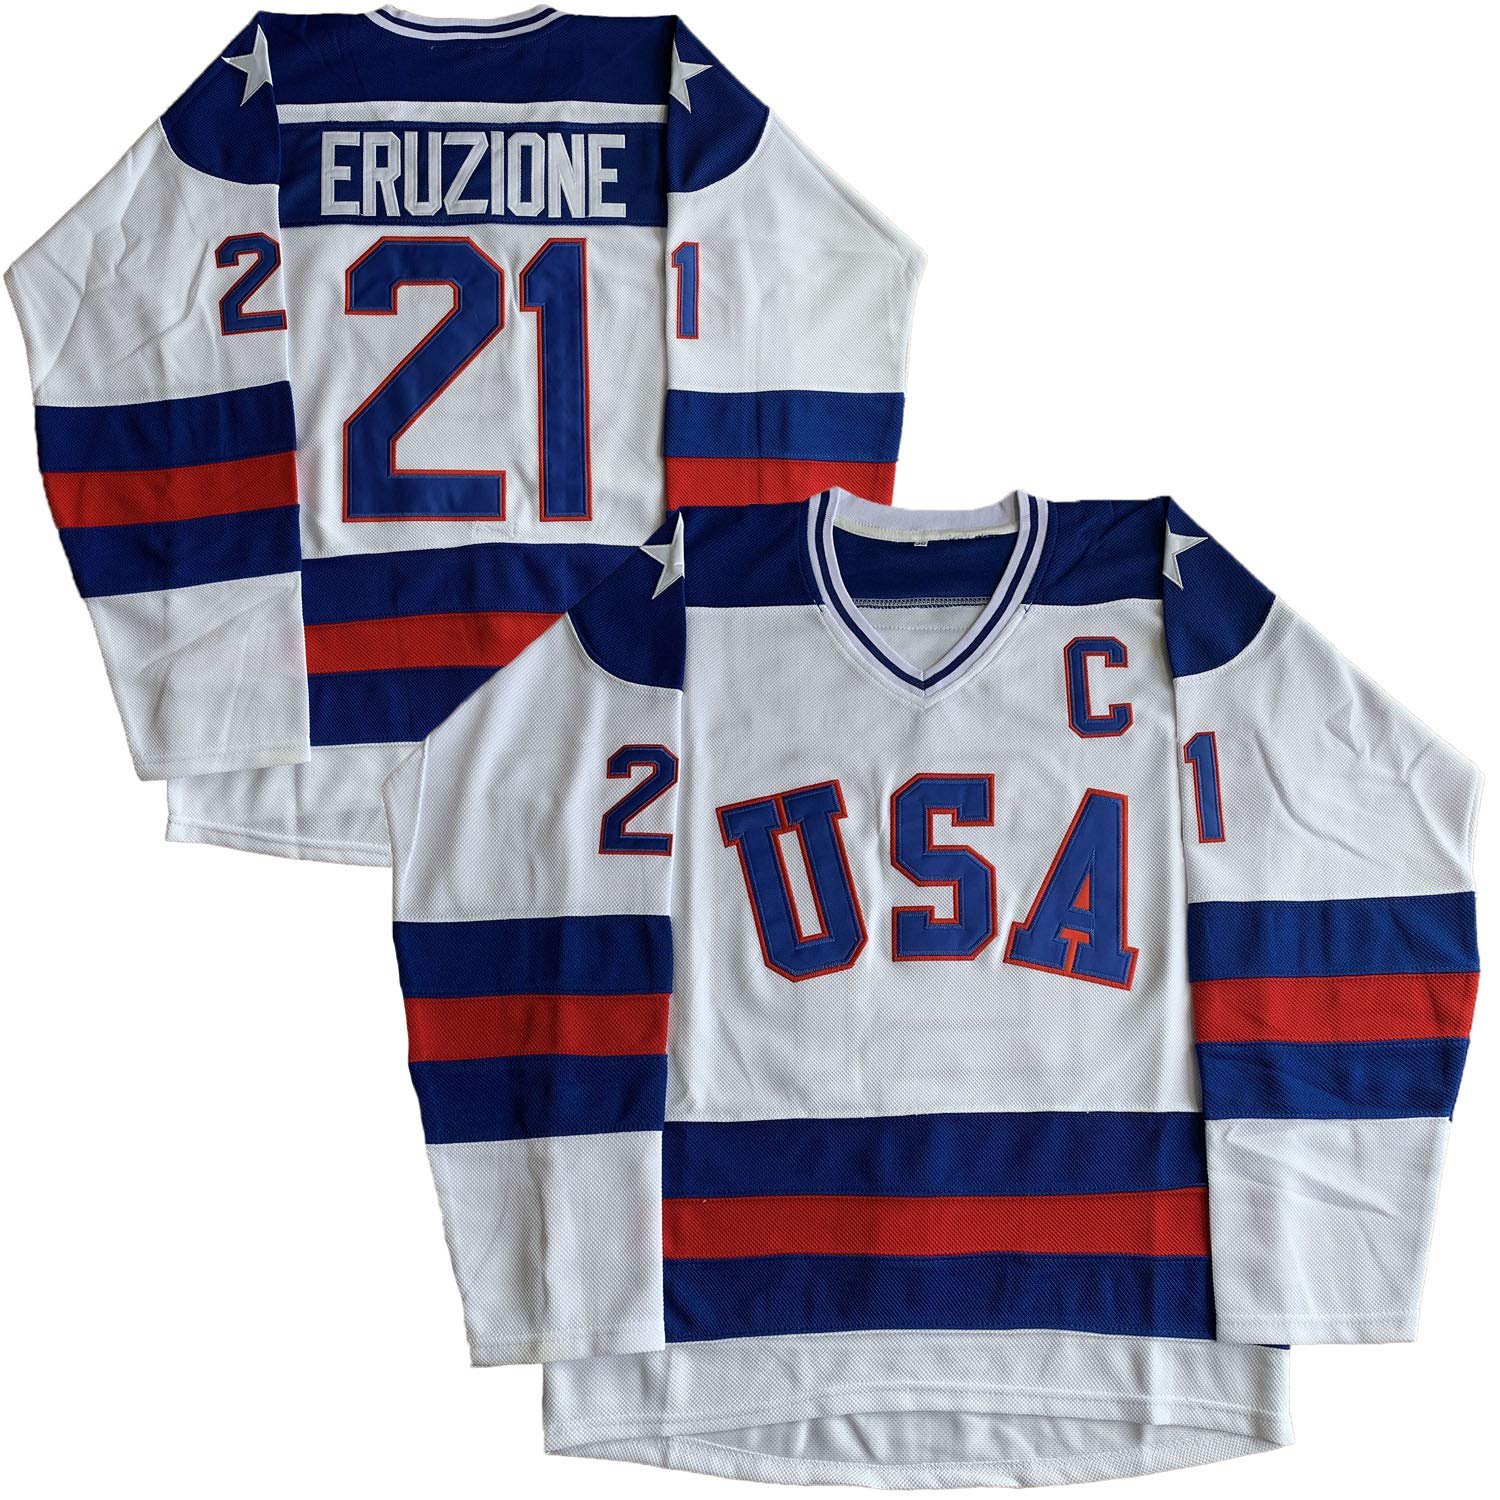 1980 USA Olympic Hockey #21 Mike Eruzione #17 O'Callahan #30...